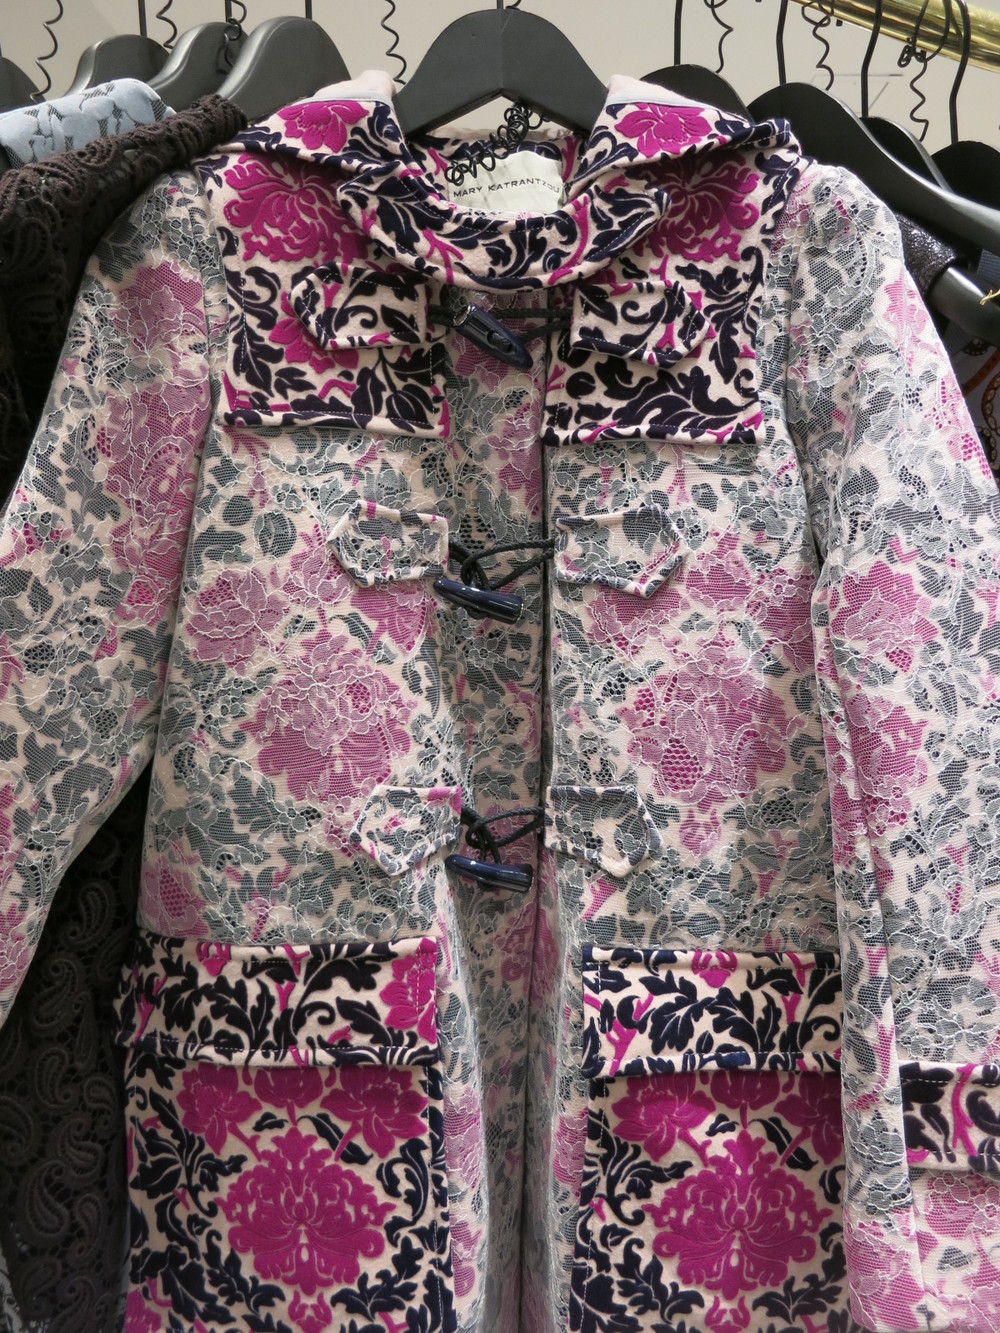 Galeries Lafayette, Paris. Mary Katrantzou 'duffle' coat!